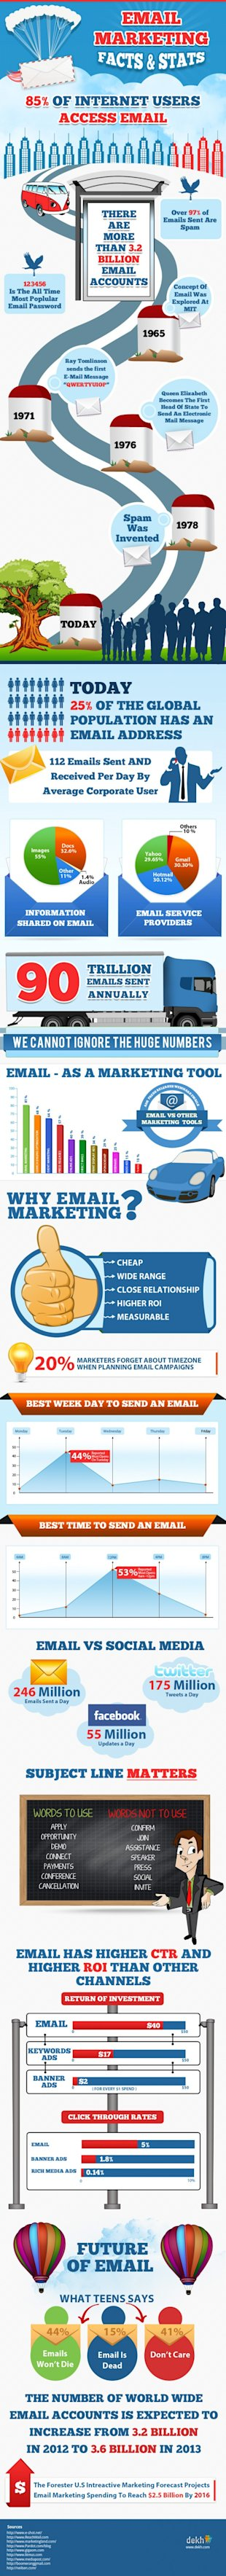 Interesting Infographics: Is There A Future For Email Marketing? image email marketing 2013 and beyond 51a49a7e73305 w587